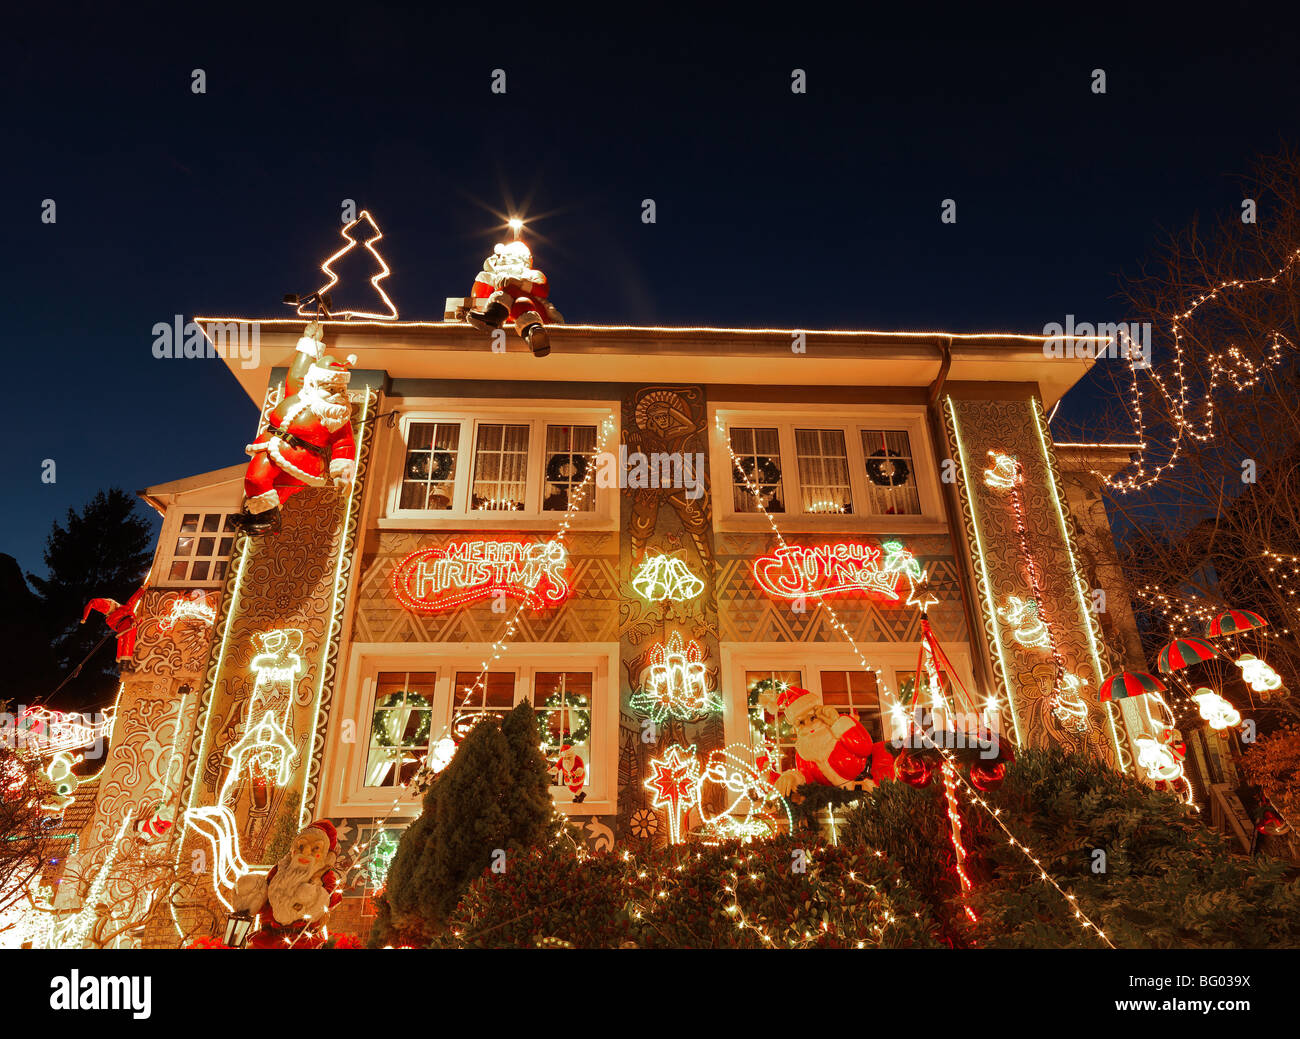 The Colourful Lights Of A Decorated Christmas House With Santa Claus Stock Photo Alamy